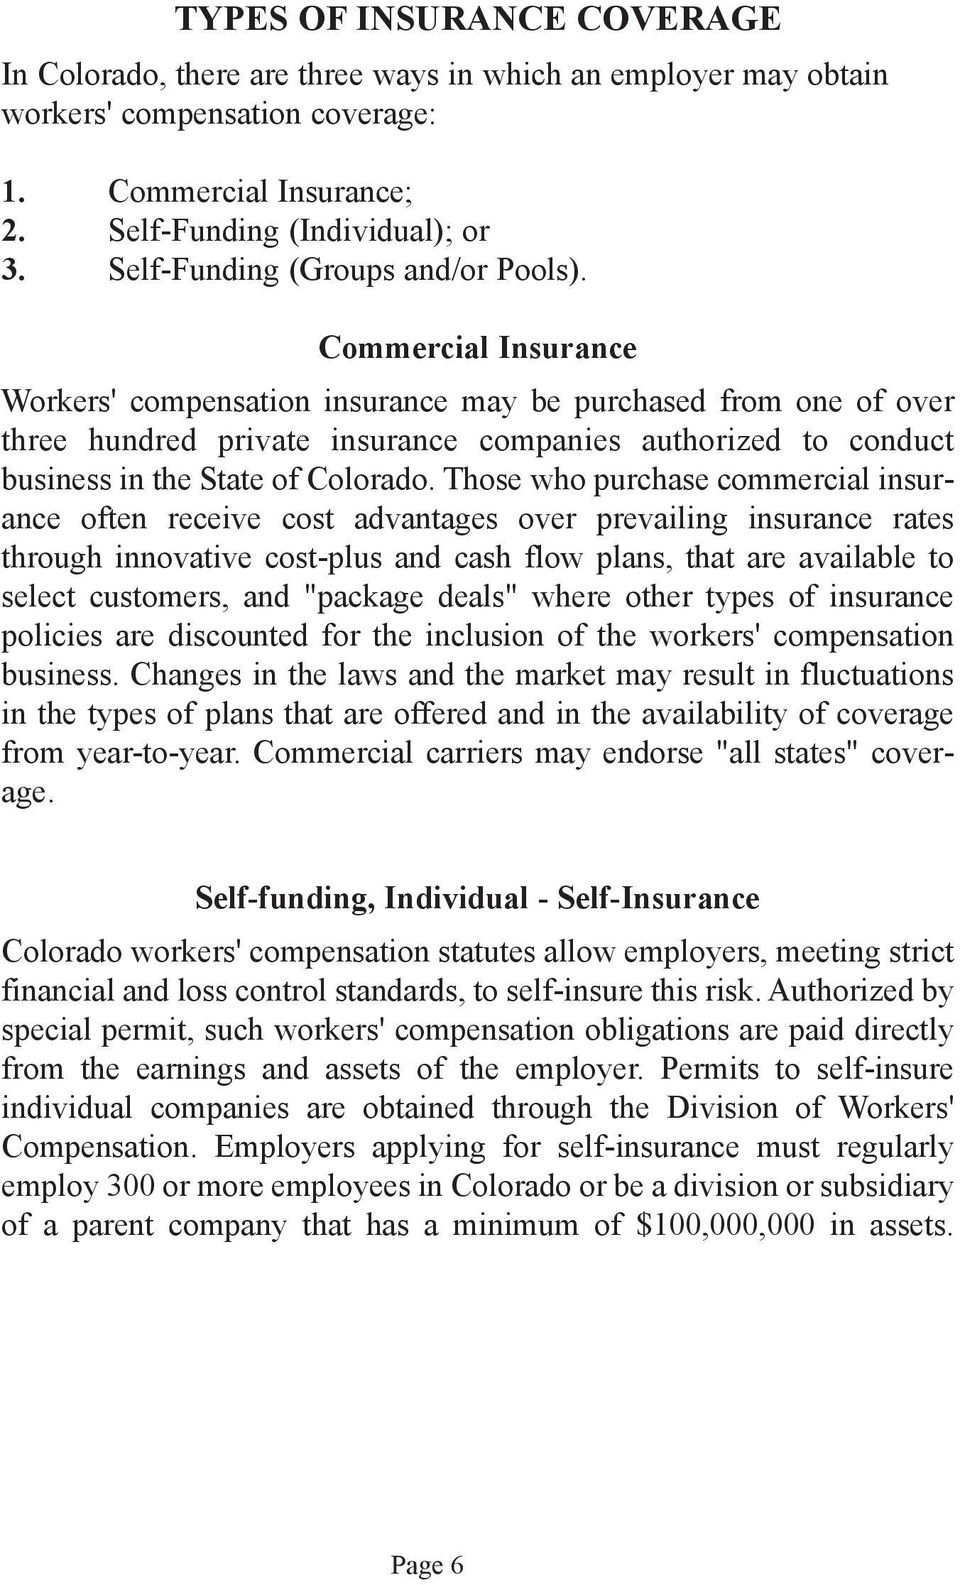 Commercial Insurance Workers' compensation insurance may be purchased from one of over three hundred private insurance companies authorized to conduct business in the State of Colorado.